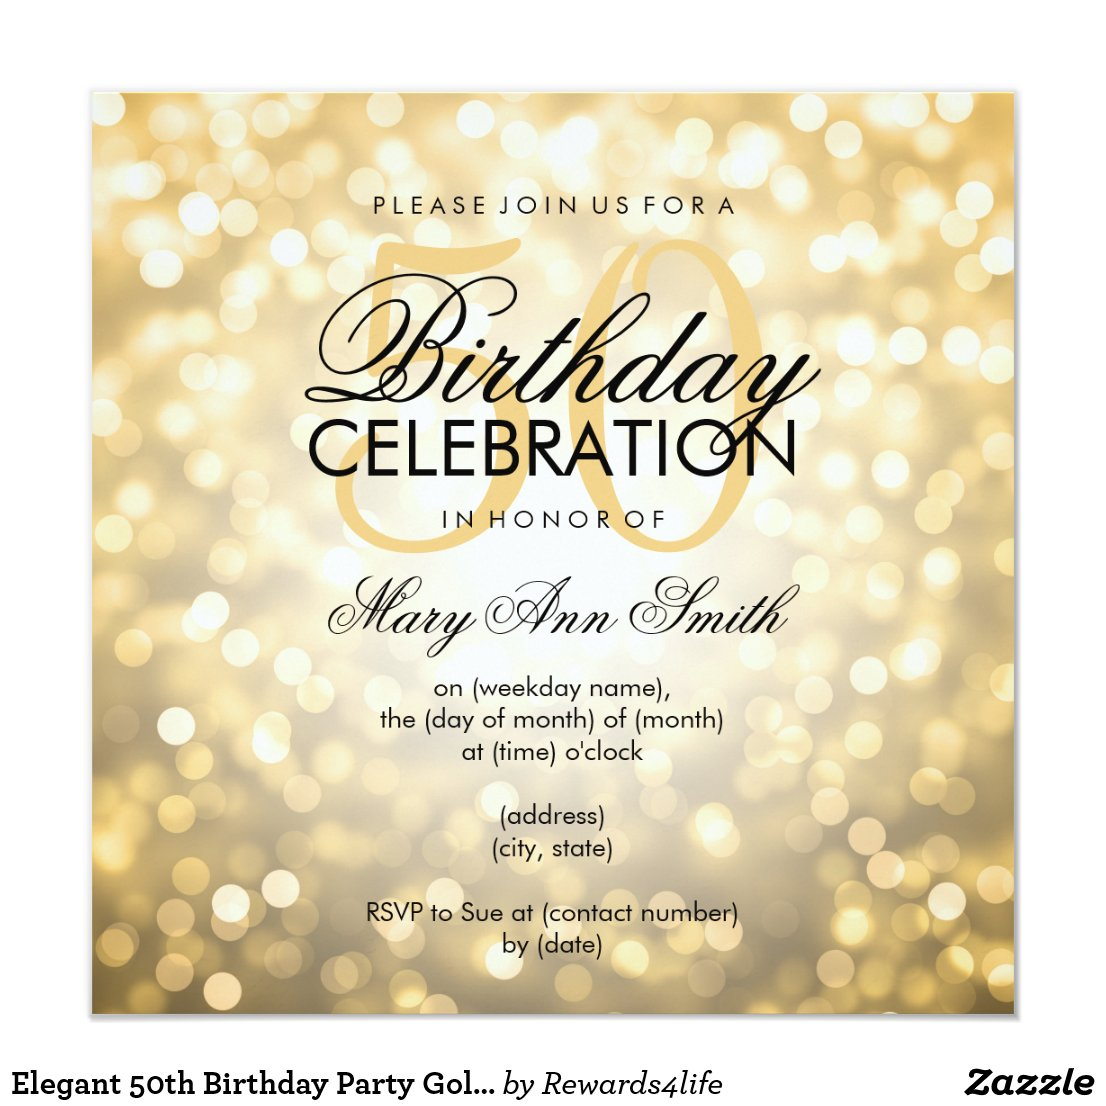 Elegant 50th Birthday Party Gold Glitter Lights